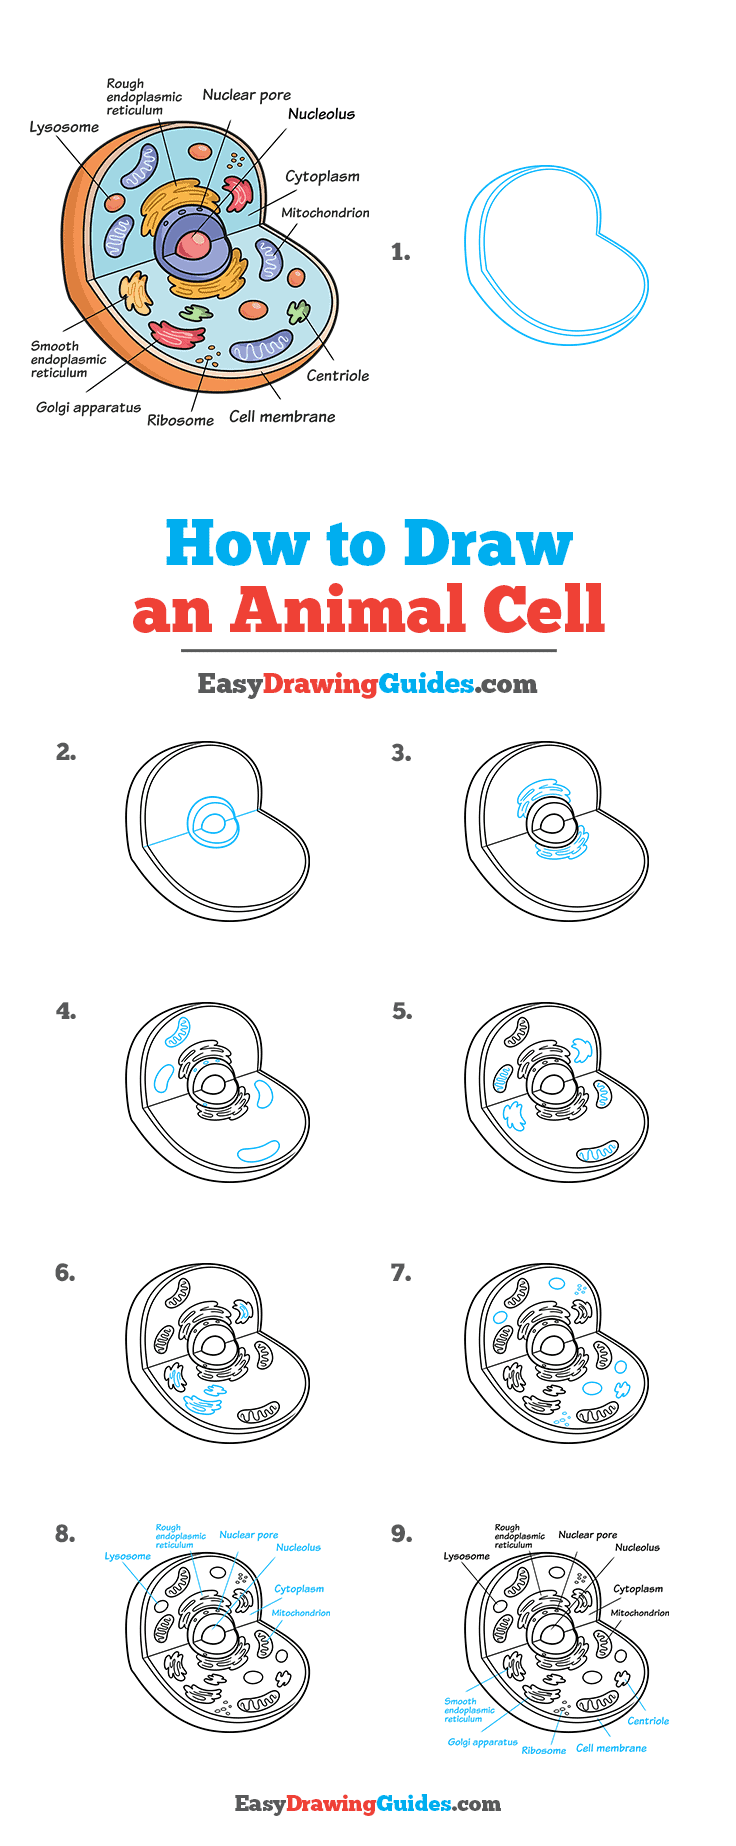 How to Draw an Animal Cell Step by Step Tutorial Image